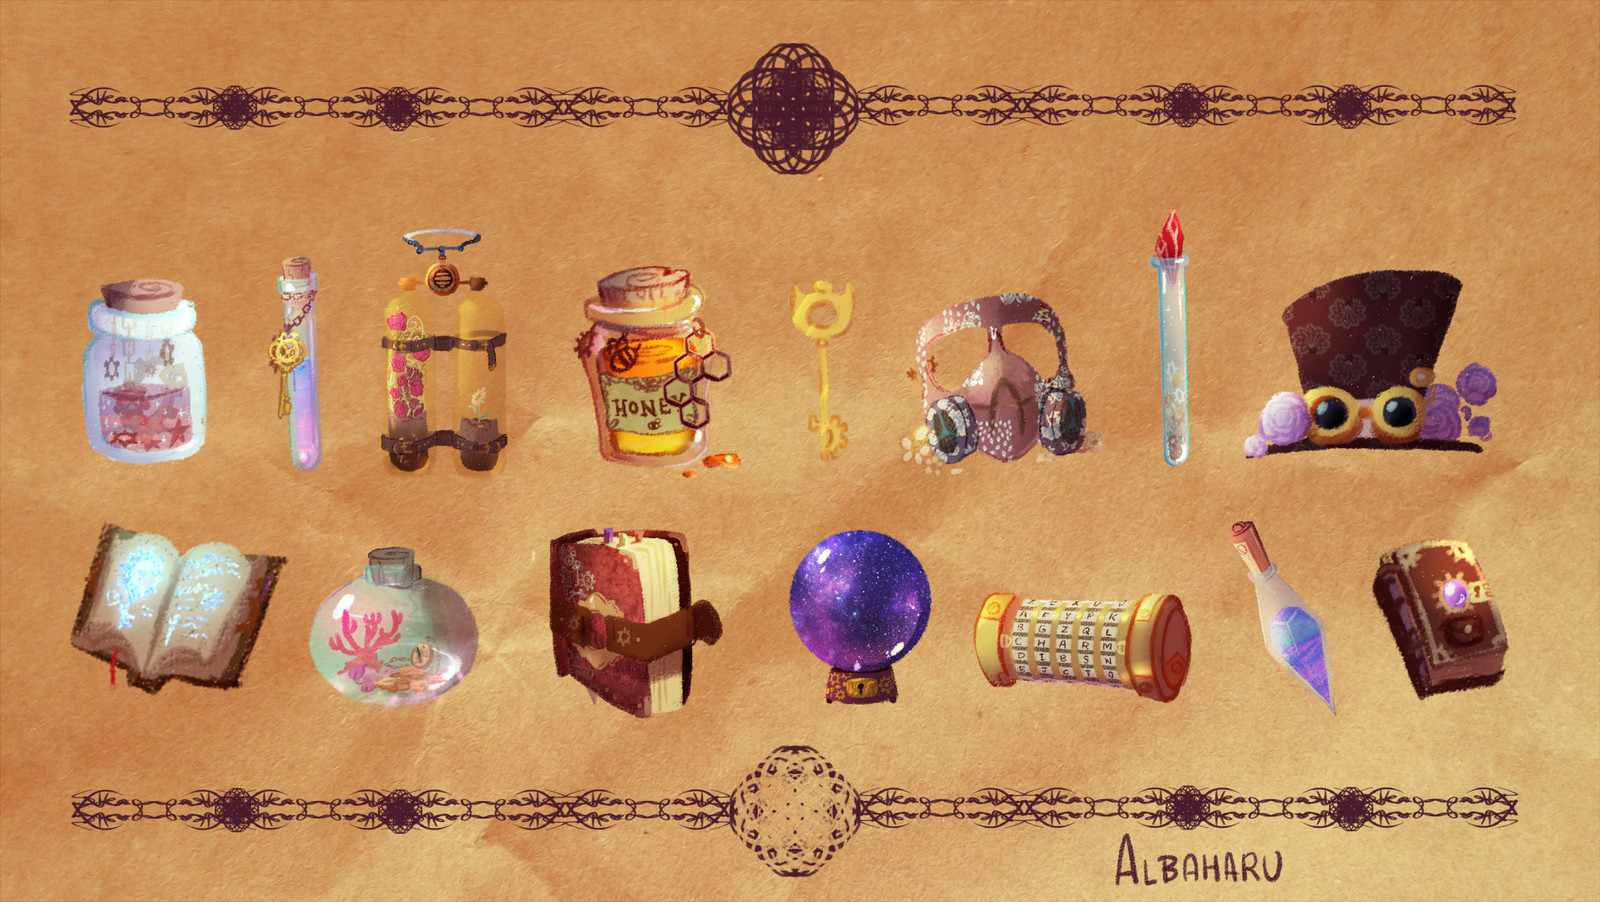 Props and items